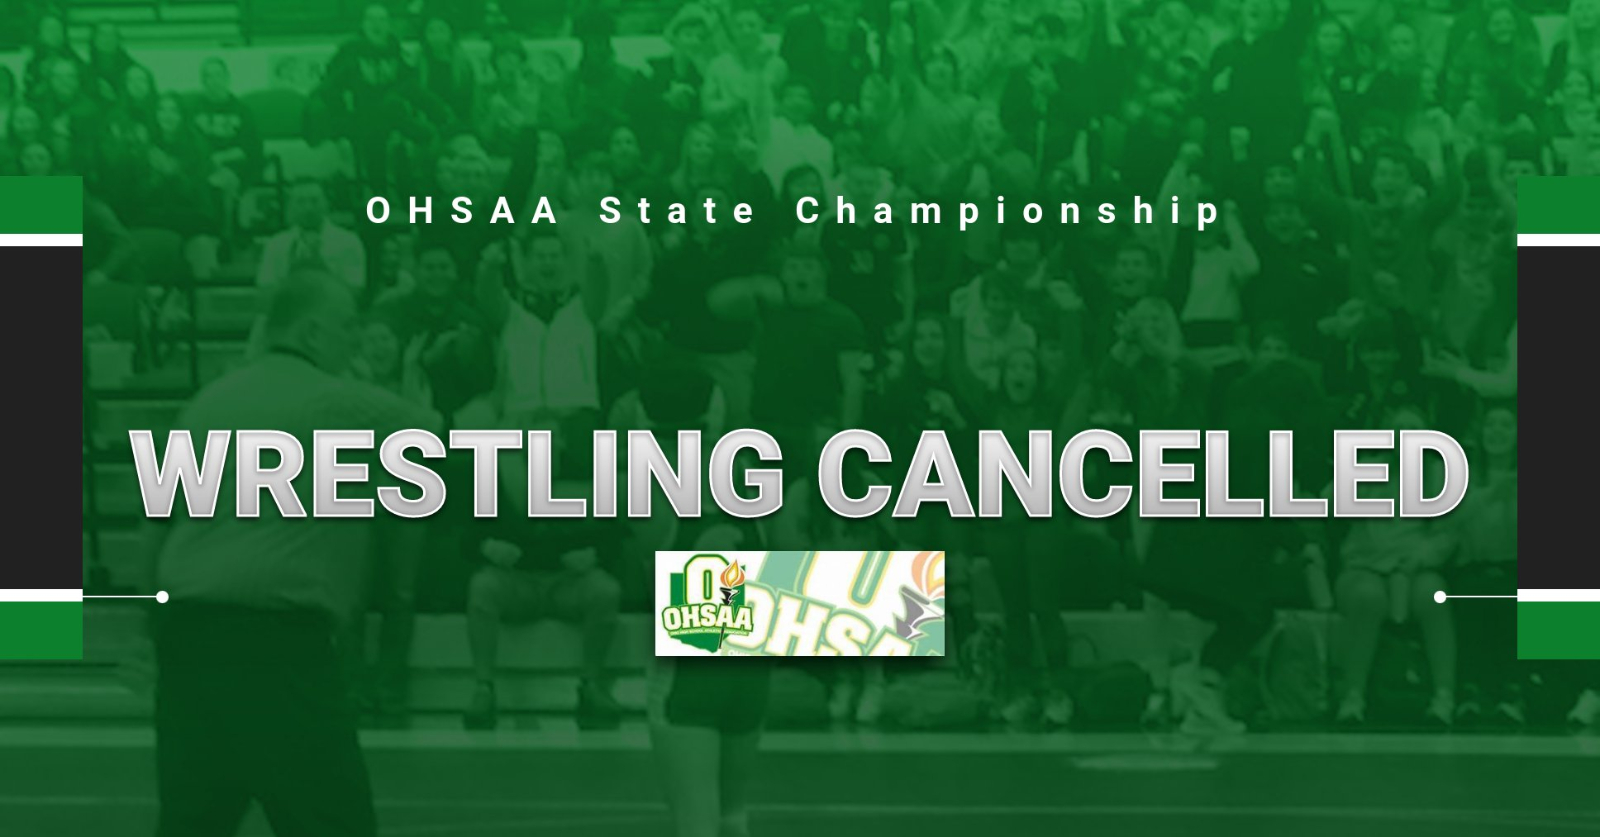 OHSAA State Championship Wrestling has been canceled